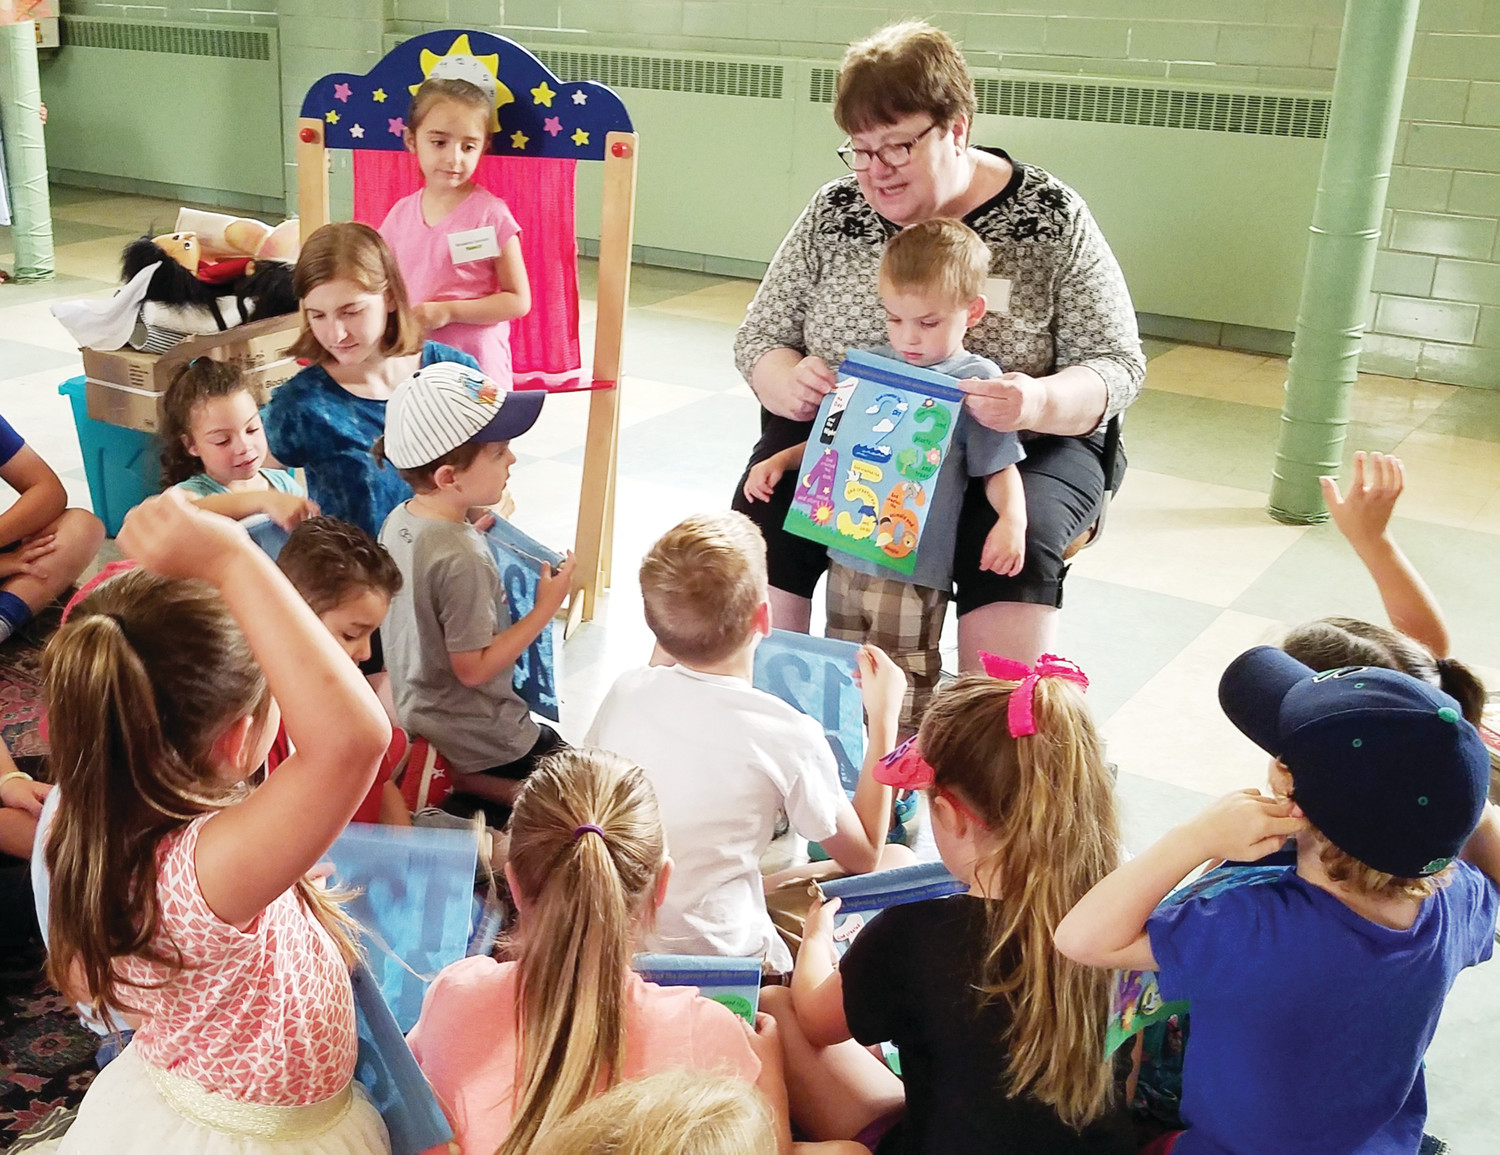 Christine Magowan, director of Faith Formation and Evangelization at St. Pius X Parish in Westerly, planned a successful five-day morning Vacation Bible School program for about 25 of the parish's children. Above Magowan talks to the children about the creation story.